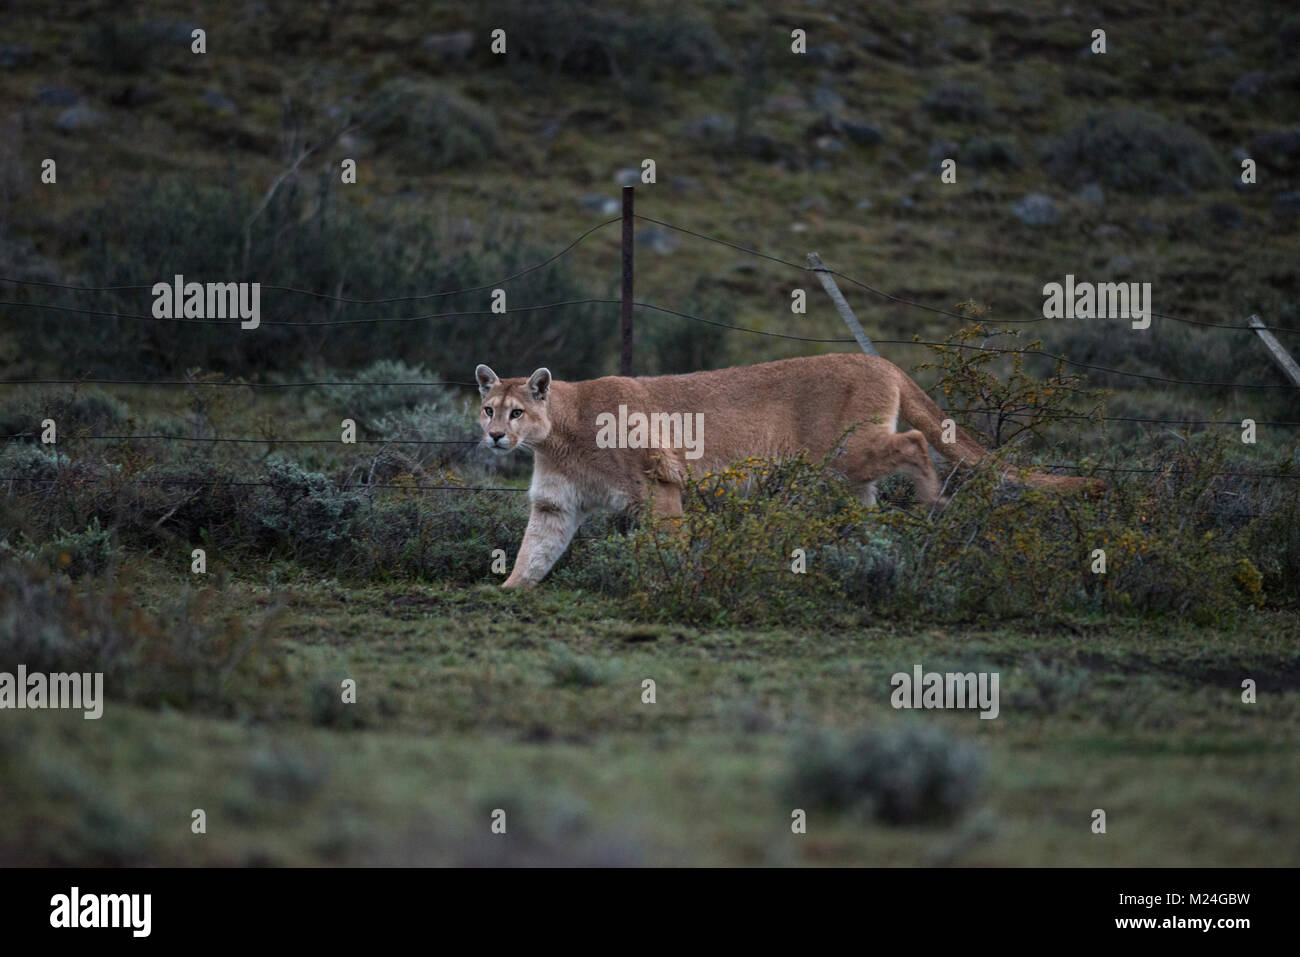 A Puma from Torres del Paine National Park, Chile - Stock Image